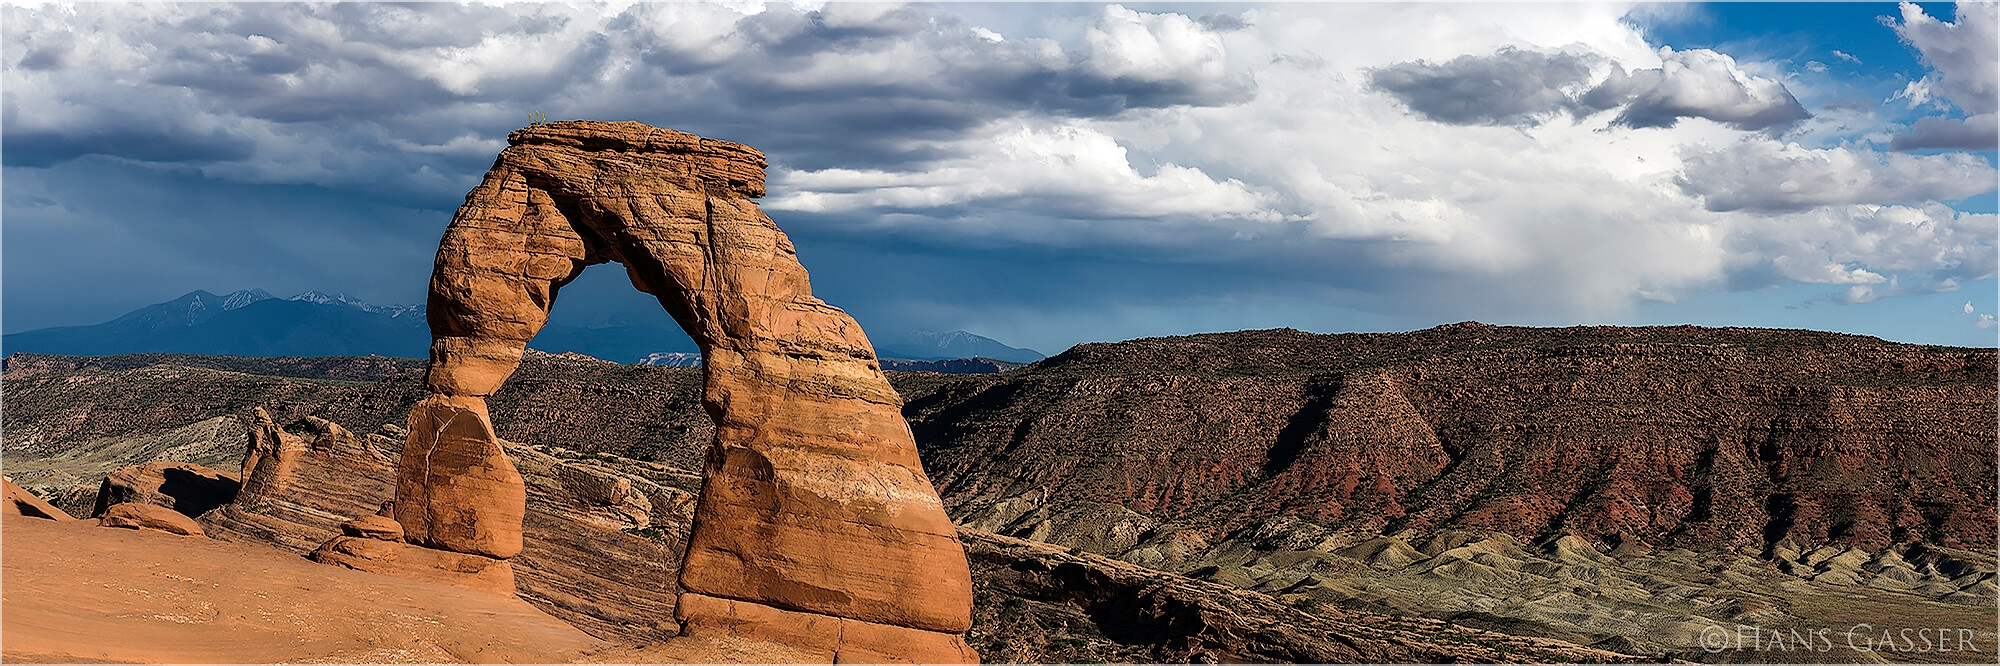 Panoramabild Delicate Arch Arches National Park Utah USA